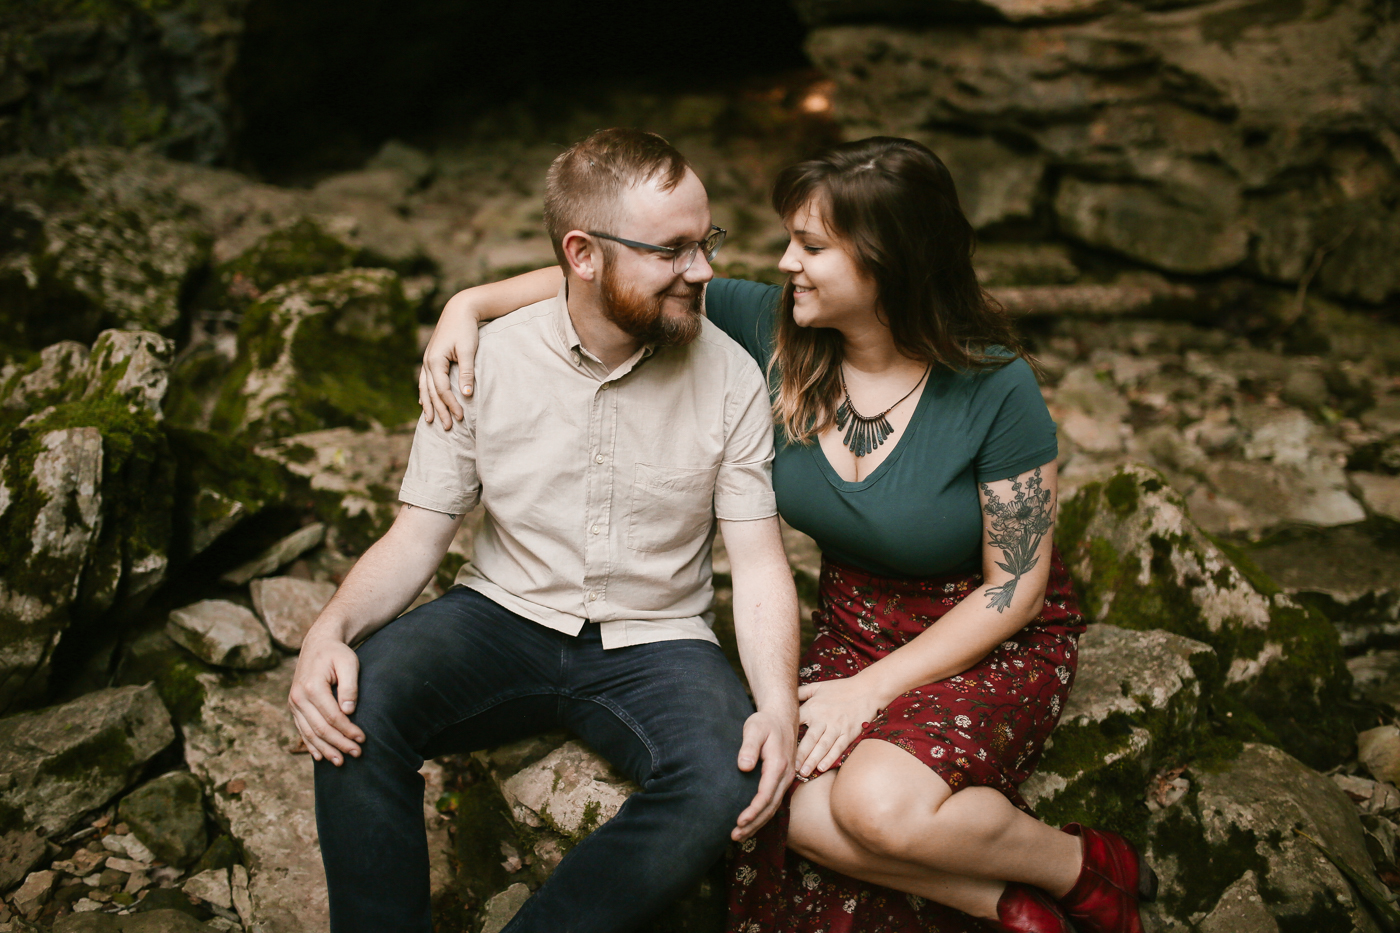 Eastern-Kentucky-Outdoors-Cave-Engagement-Photography-42.jpg